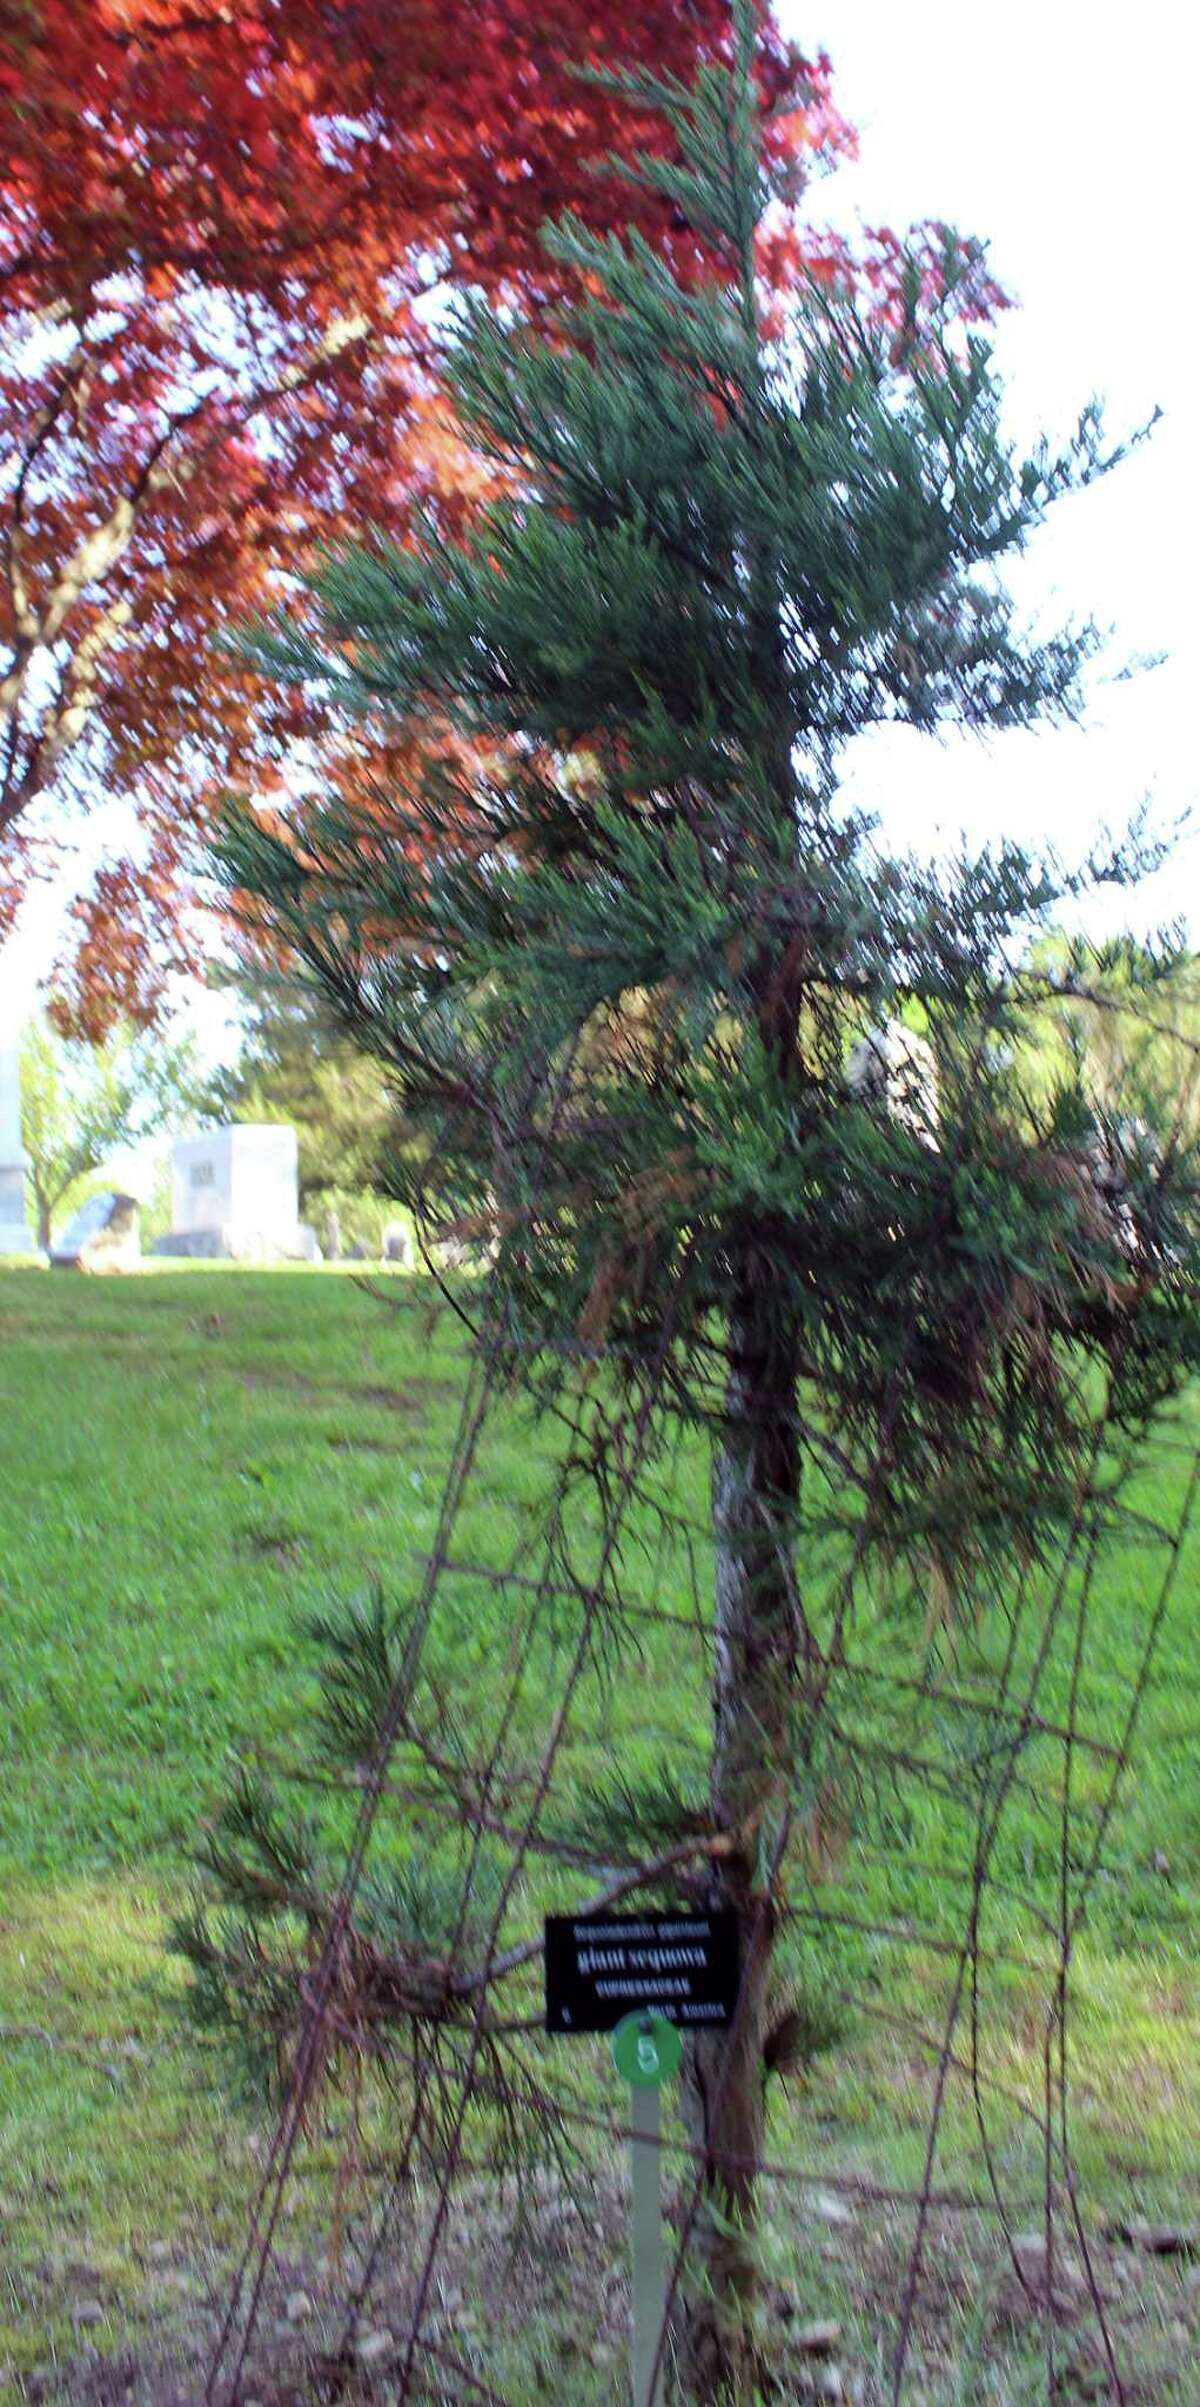 A young Giant Sequoia is part of the arboretum at Oak Lawn Cemetery.